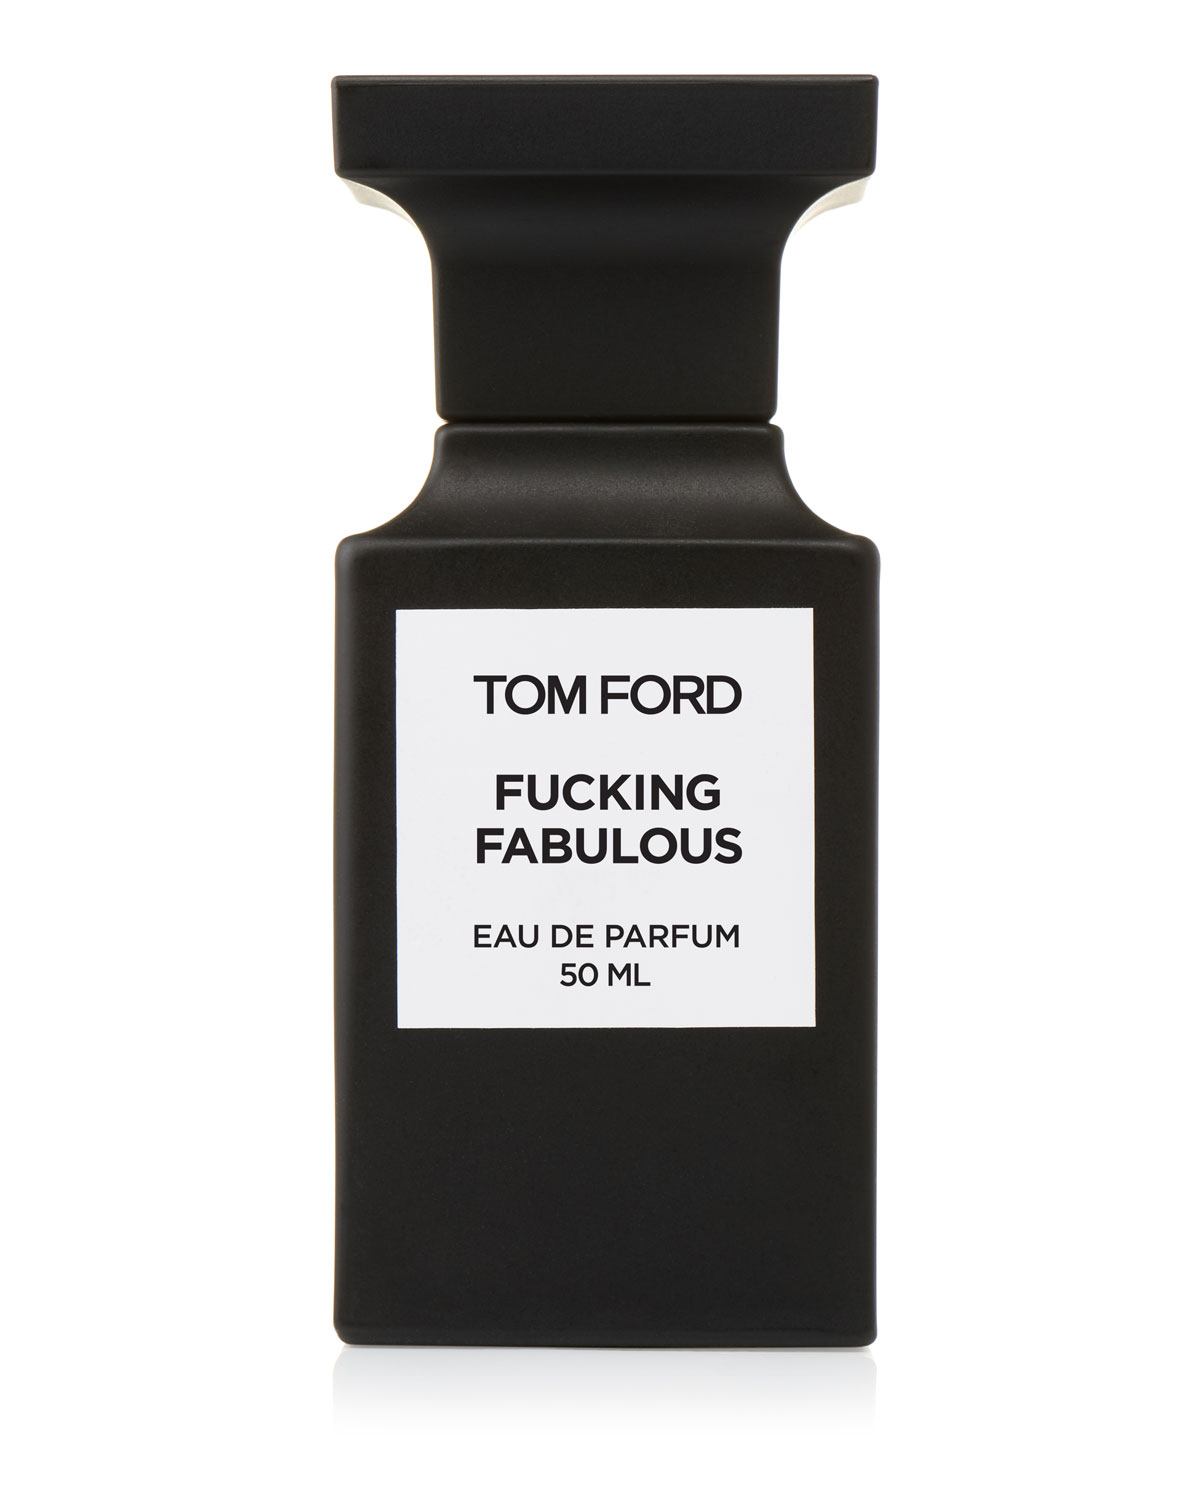 TOM FORD 1.7 oz. Fabulous Eau de Parfum